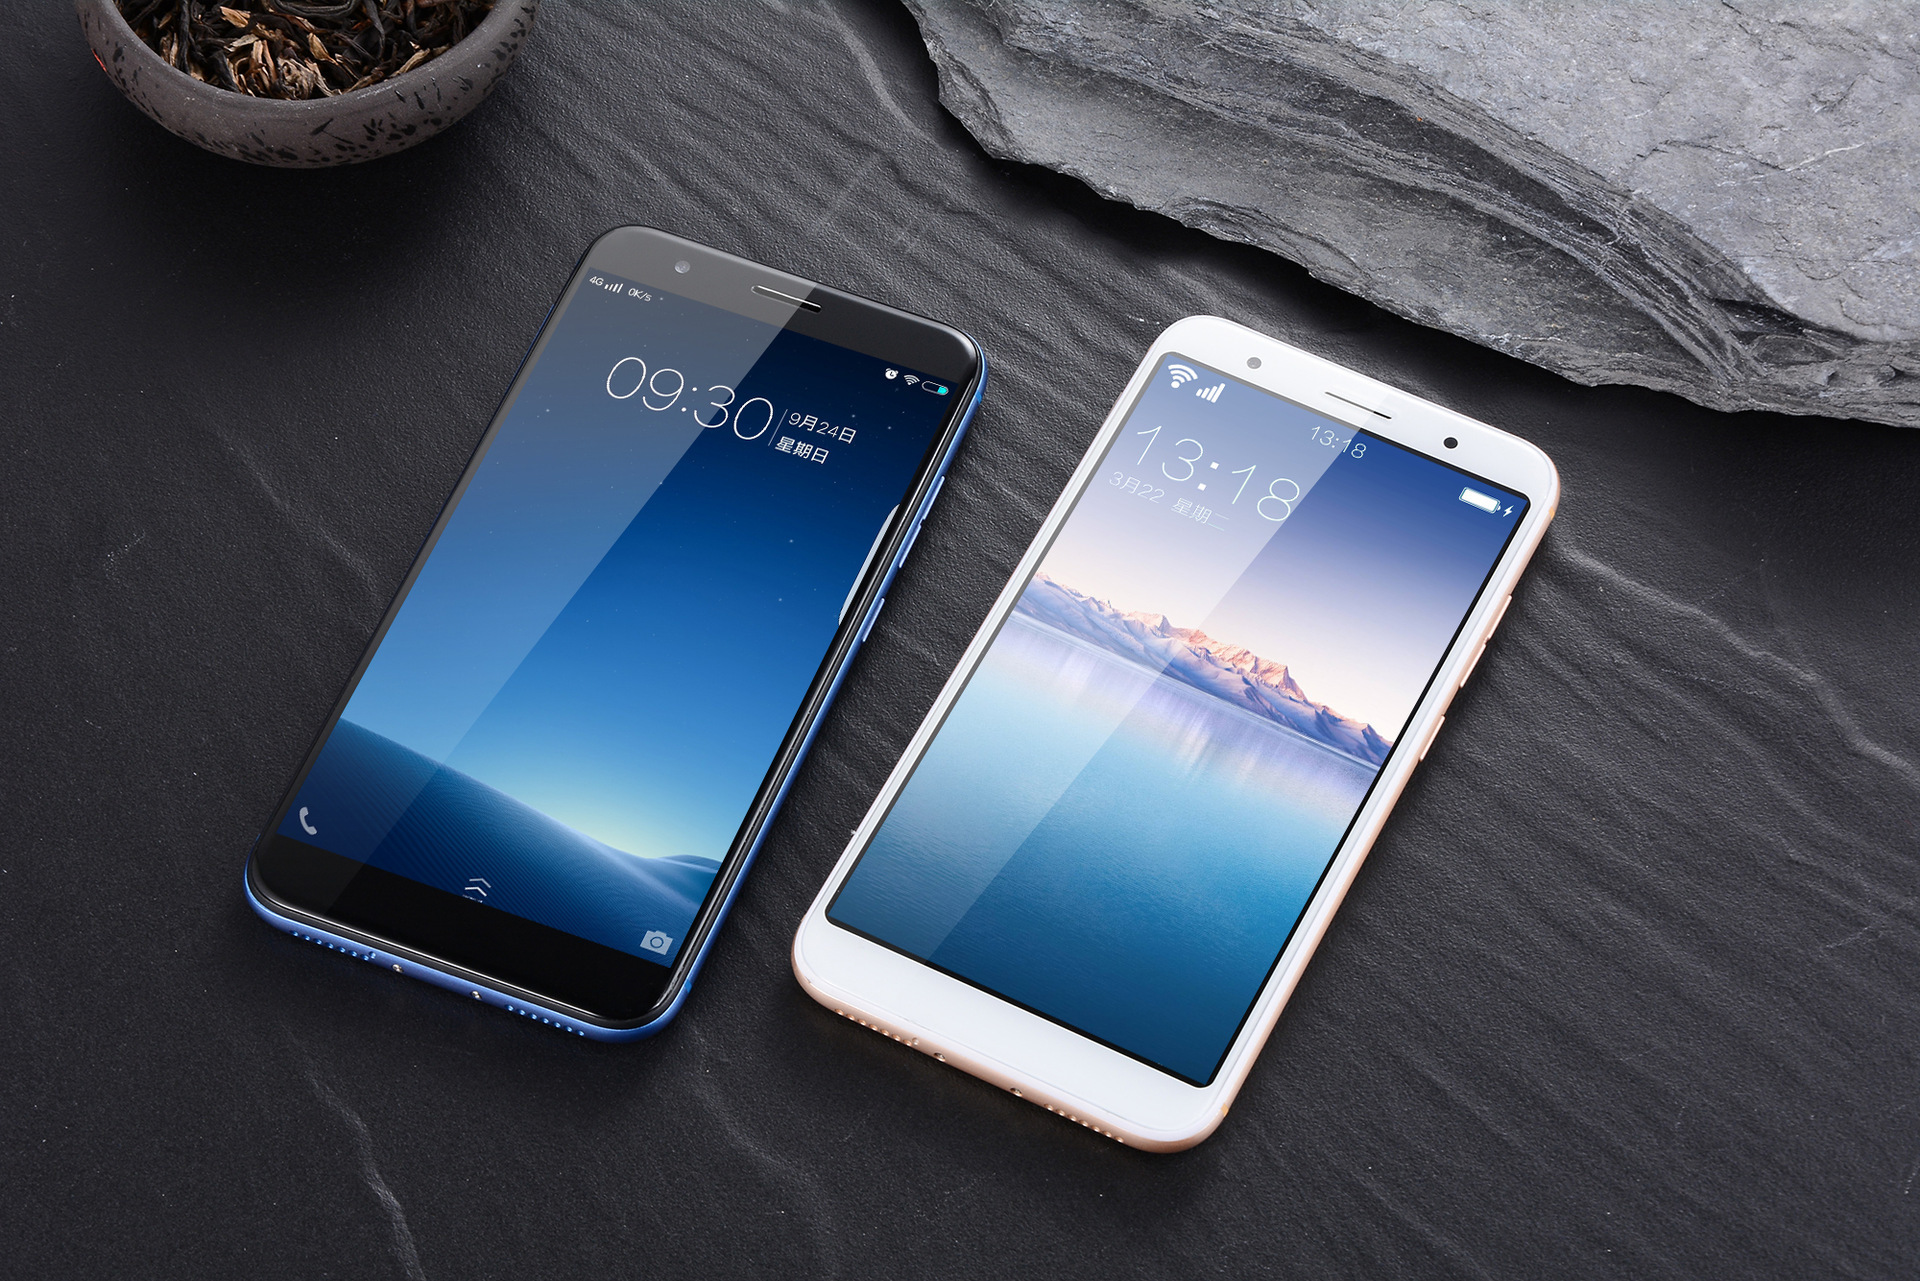 Edition Comprehensive Screen Mobile Phone Ten Kernel Full Cnc 4g Curved Surface Nothing Frame Face Unlocking Full Cnc Security Excellent